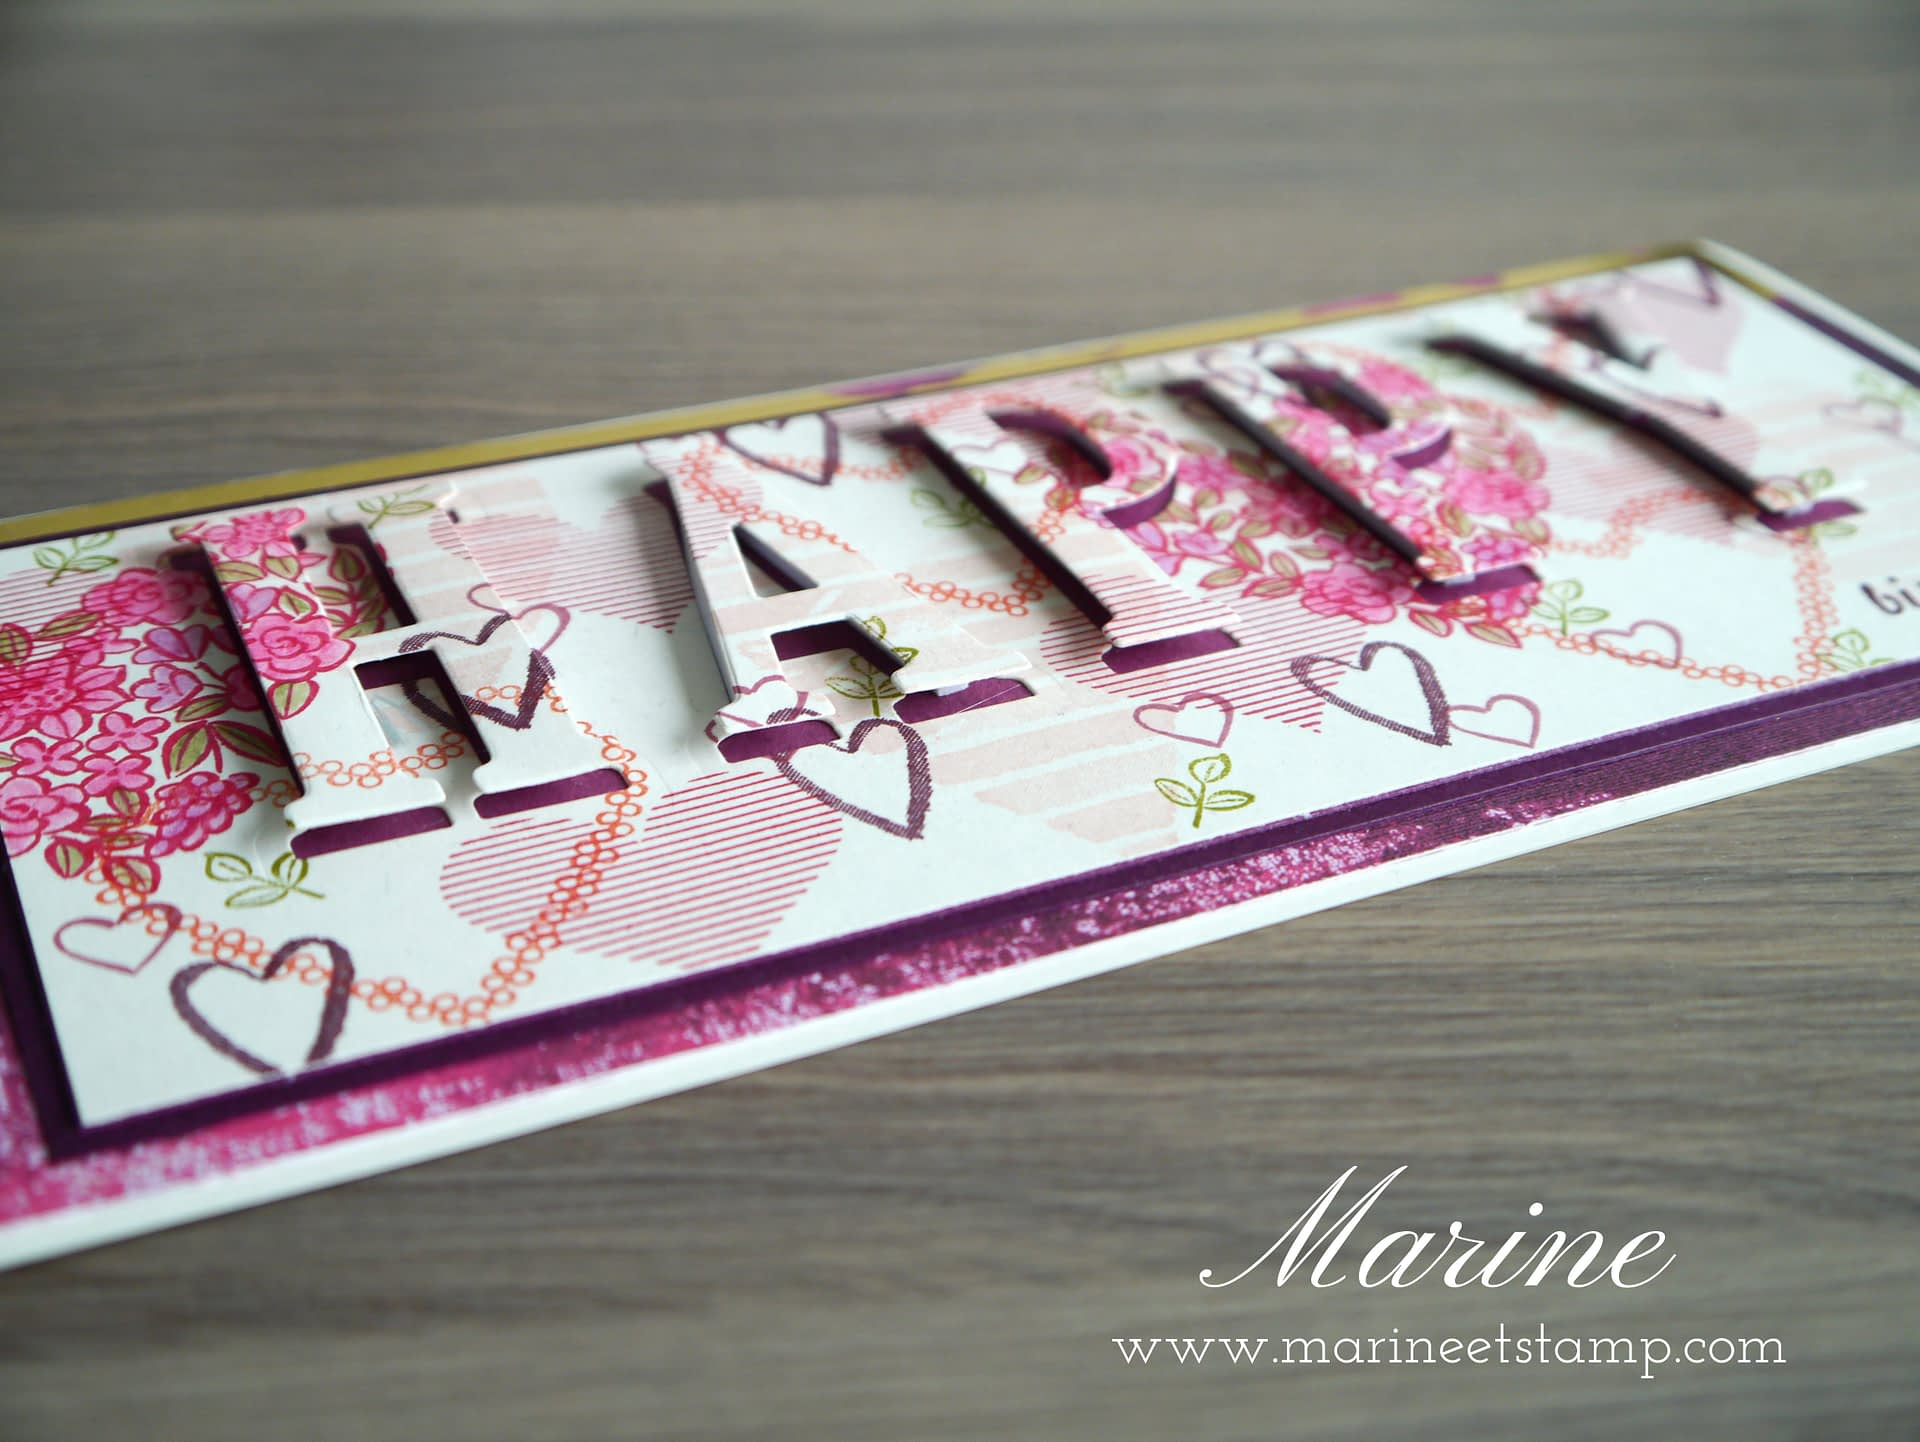 StampinUp – Marine Wiplier – Totally Techniques – Janv18-3